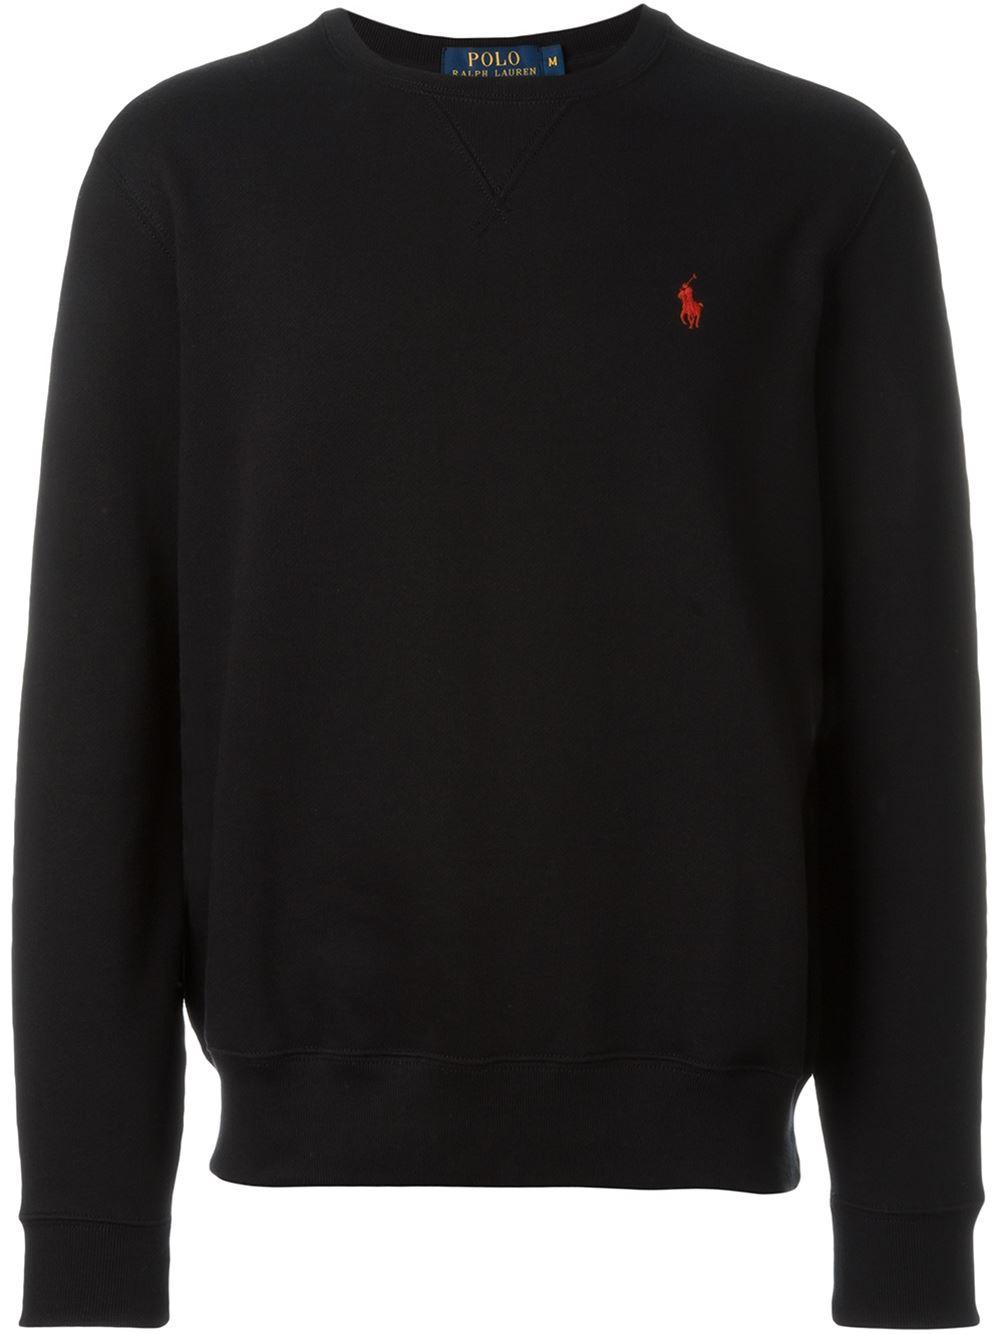 polo ralph lauren logo sweatshirt in black for men lyst. Black Bedroom Furniture Sets. Home Design Ideas